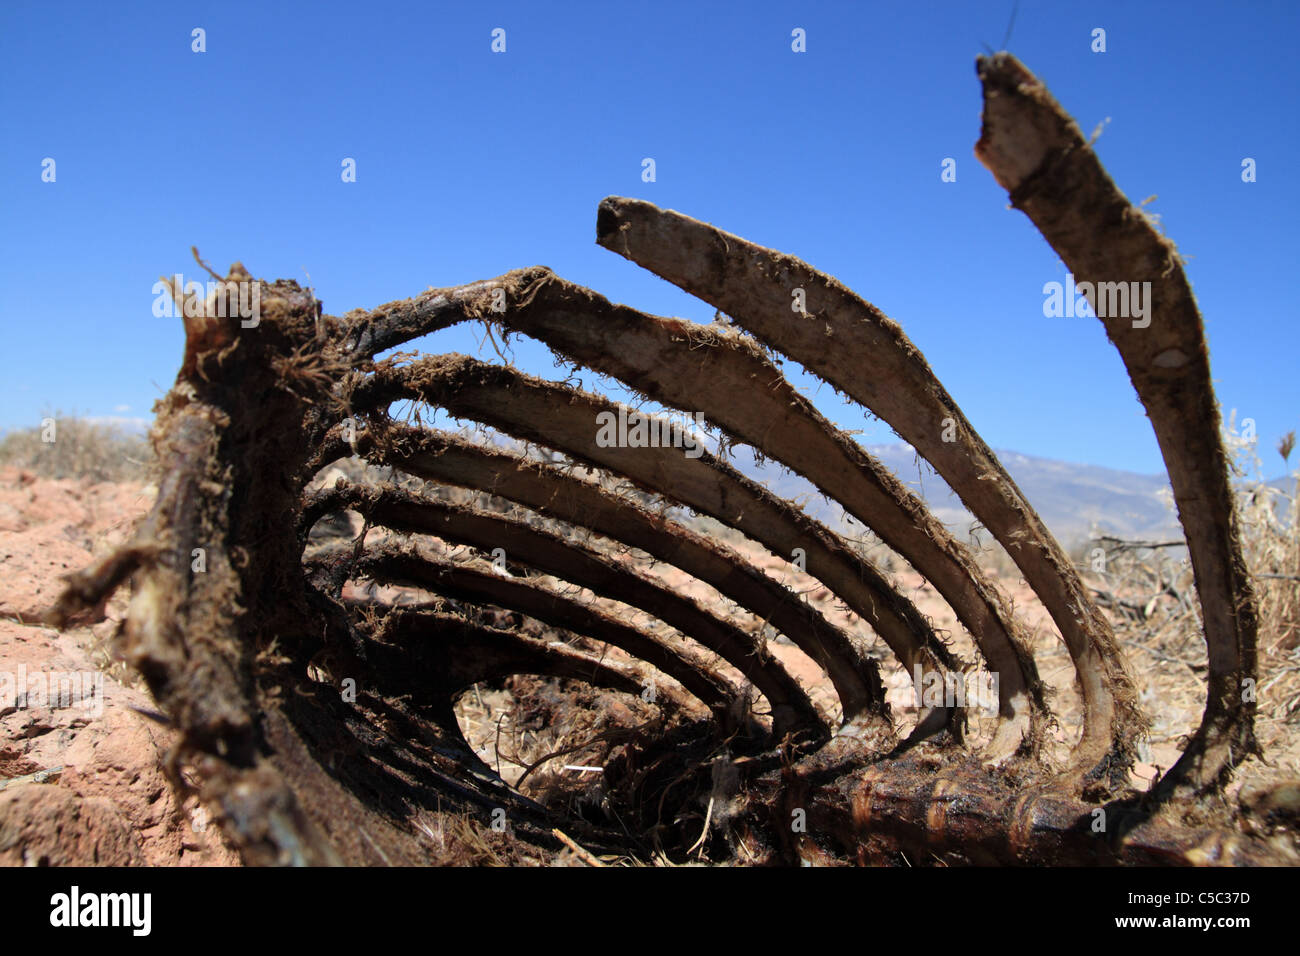 dead sheep carcass rib cage viewed from the open end - Stock Image